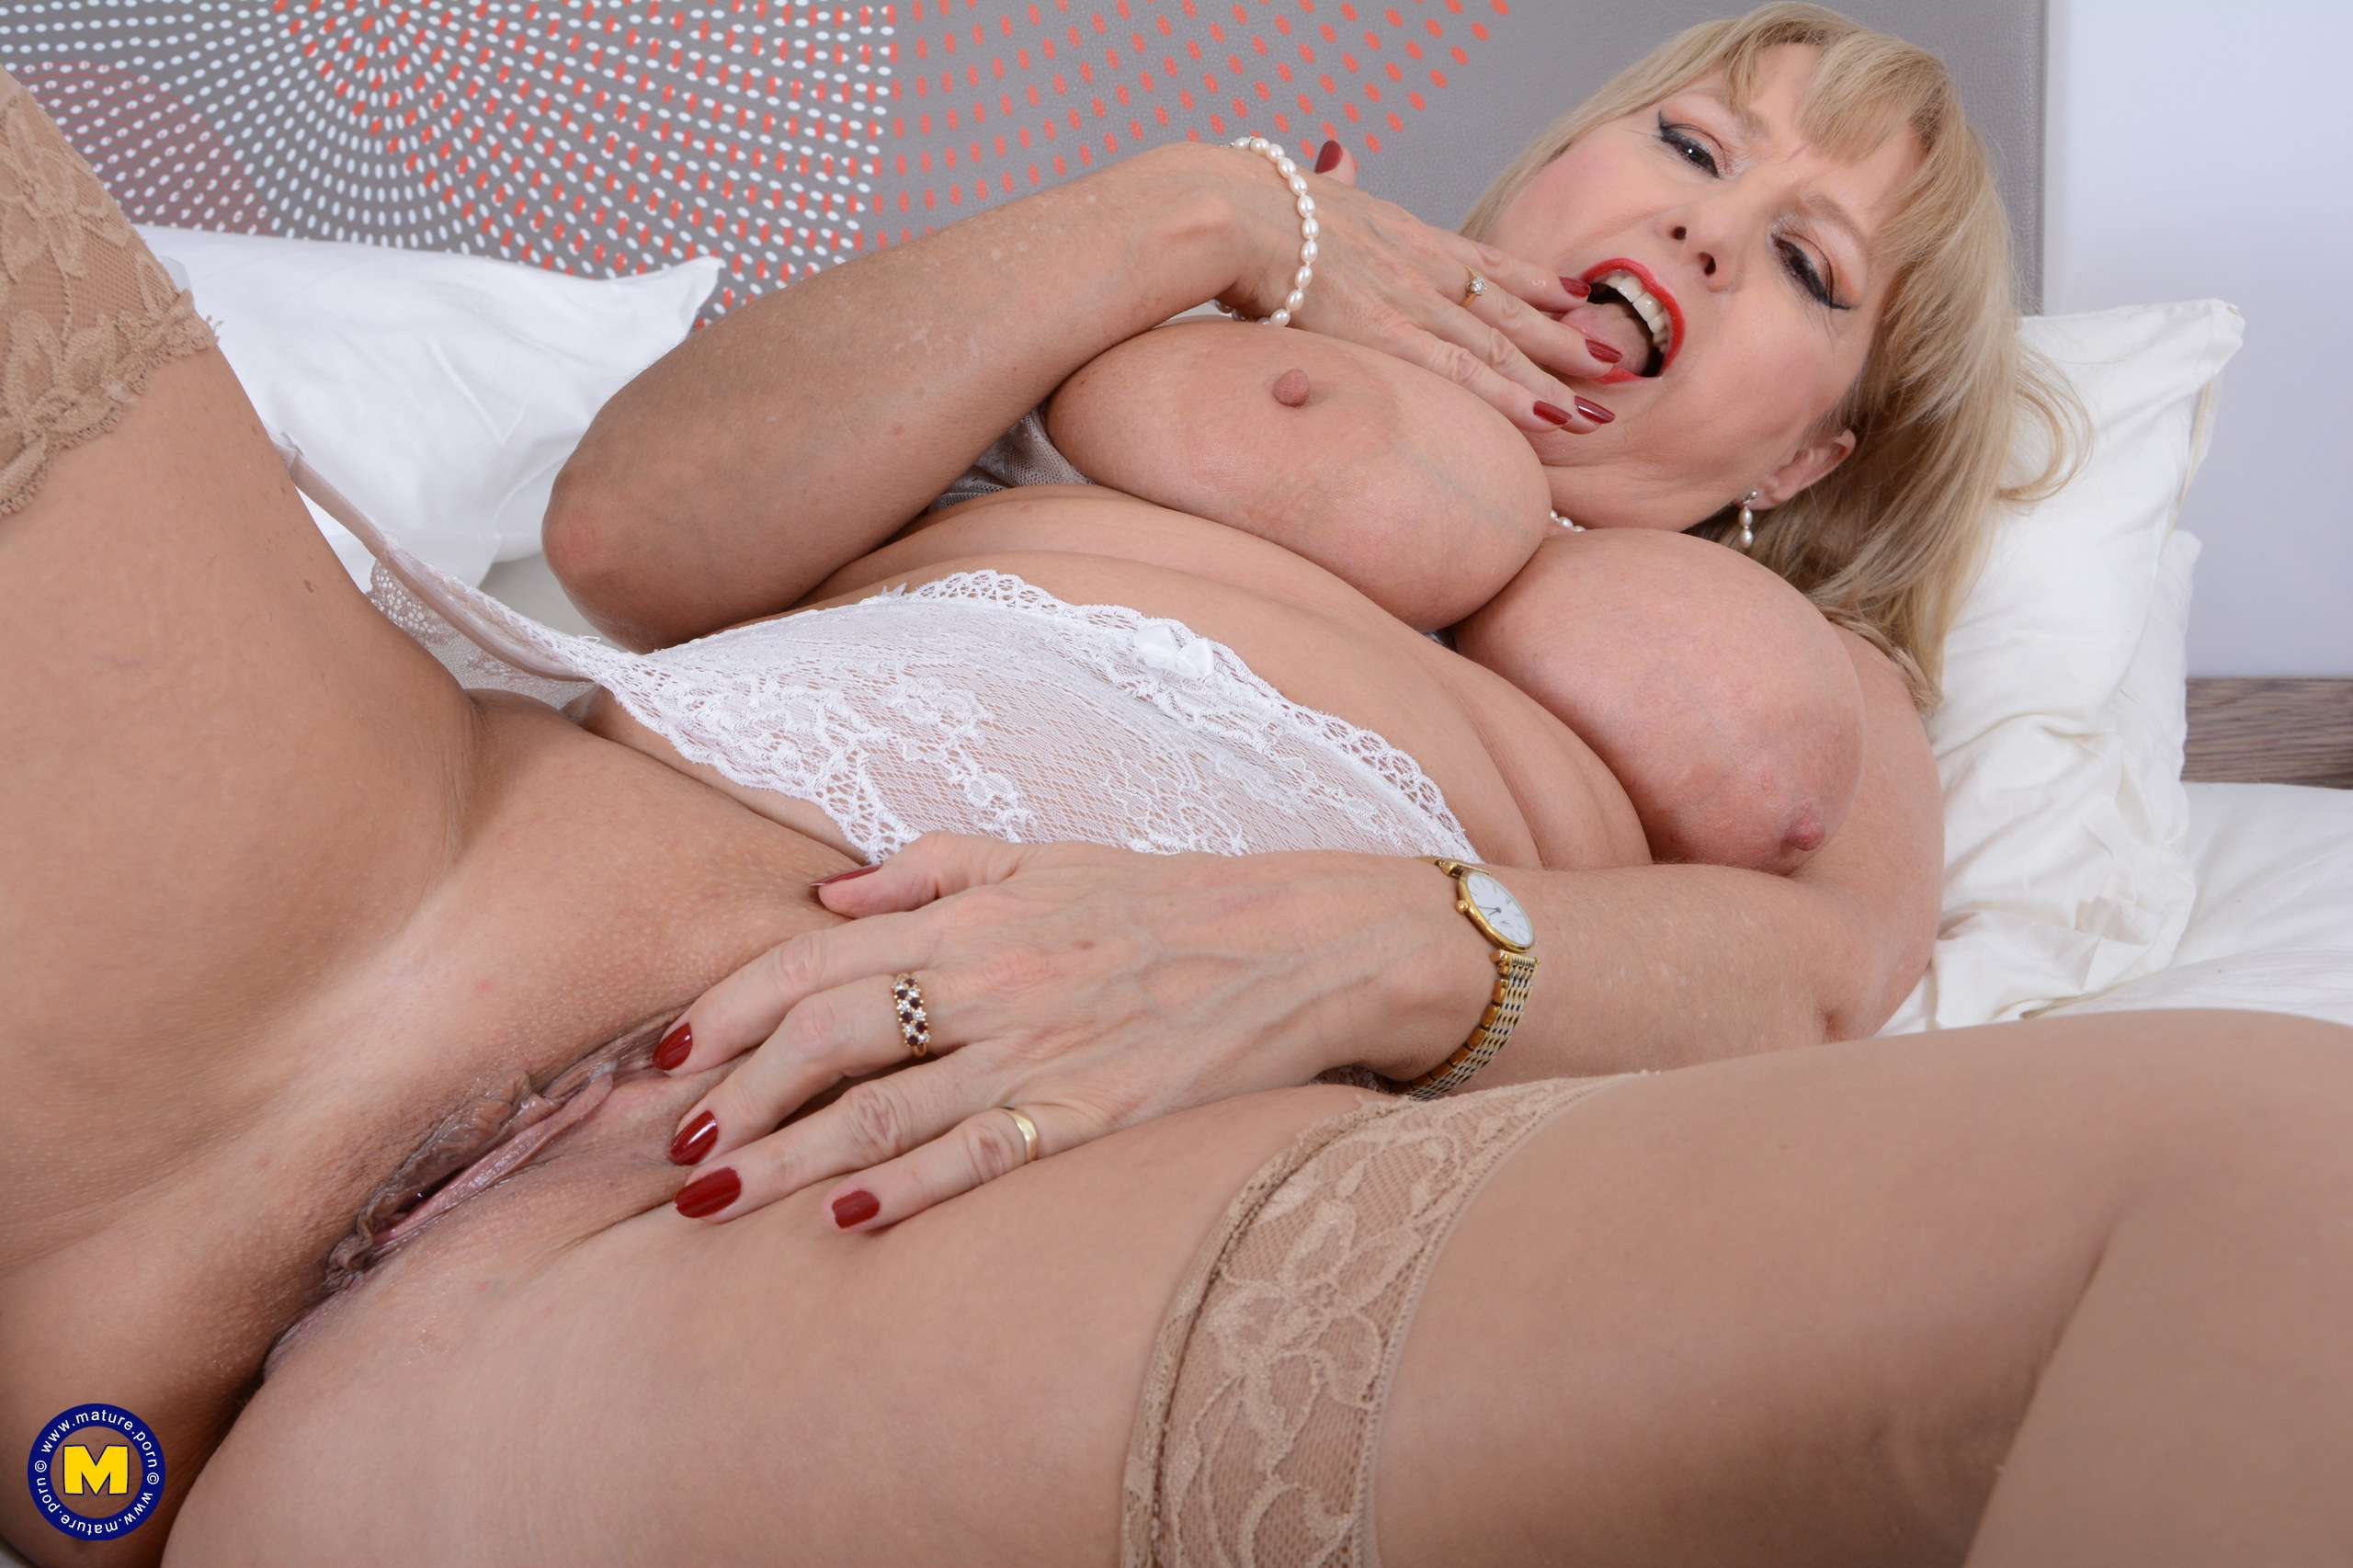 Horny mature Lorna Blu getting ready to play with her pussy at Mature.nl